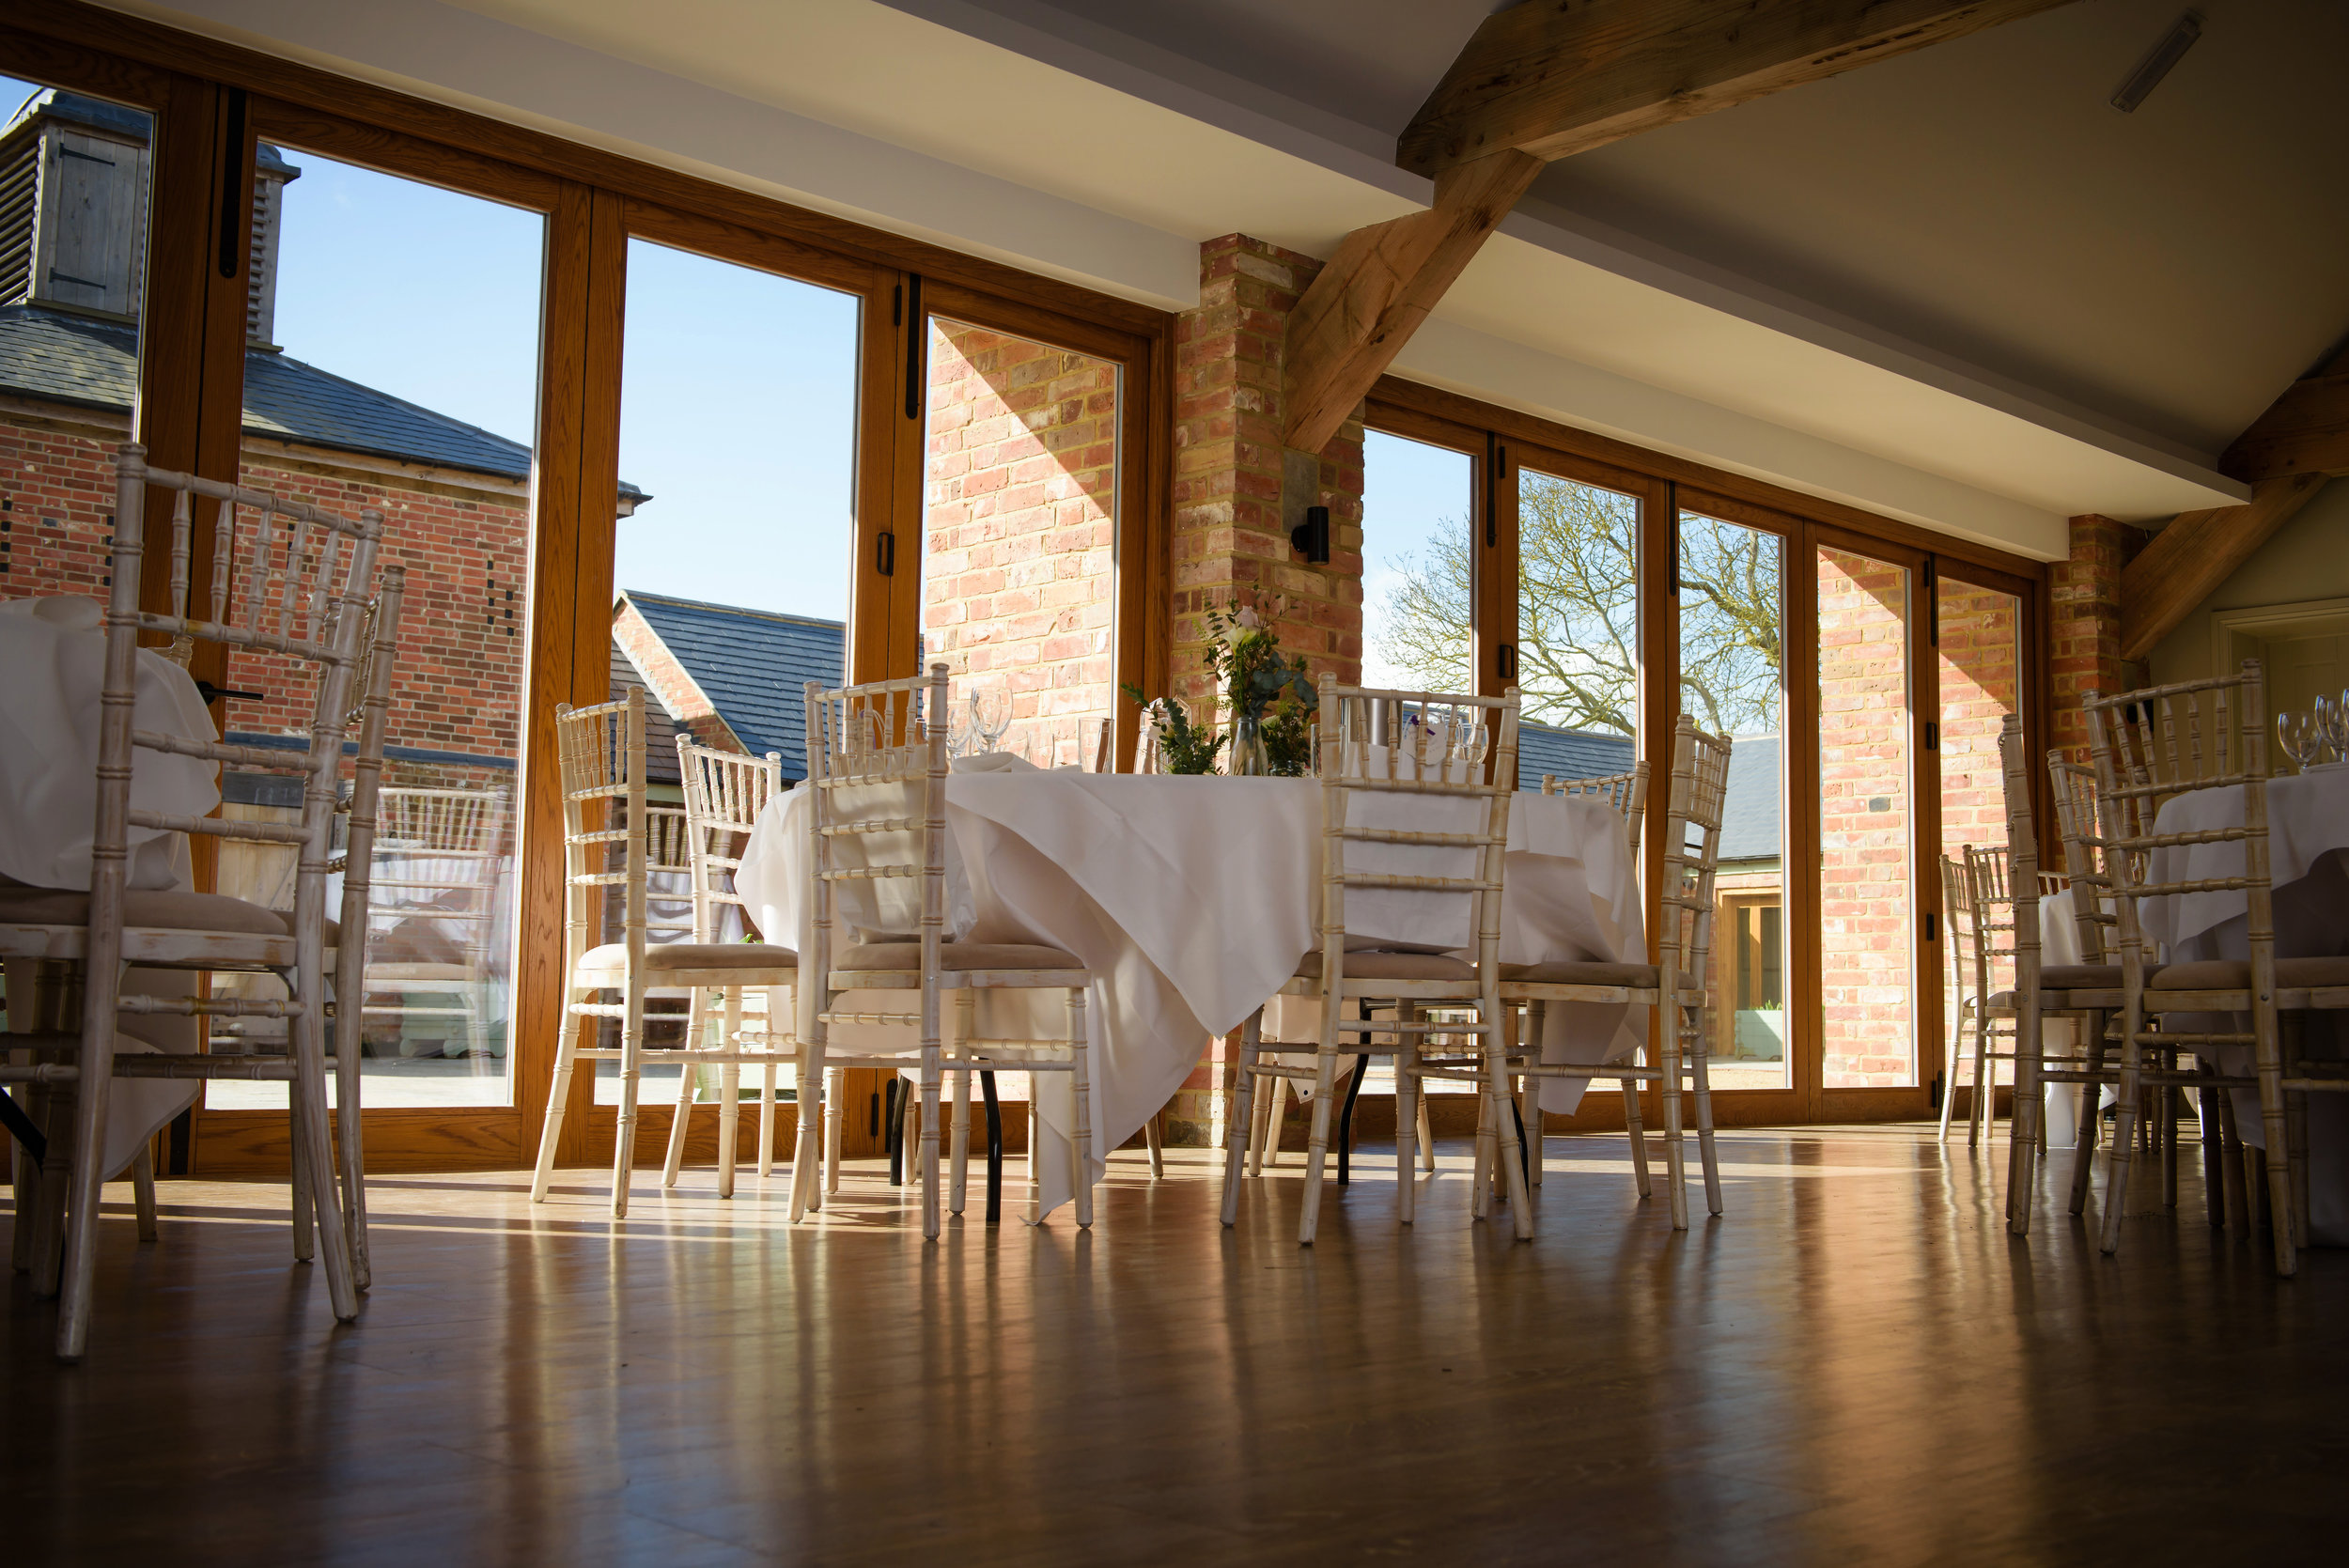 """- The New Barn is the newest addition to the courtyard buildings at Apton Hall, it features our """"wishing well"""", found when renovating the barn in 2016.Creating the perfect setting for your wedding breakfast with bi-fold doors opening up on to the courtyard on those hotter summer nights and with an extension to double the size of the room to host up to 200 covers."""